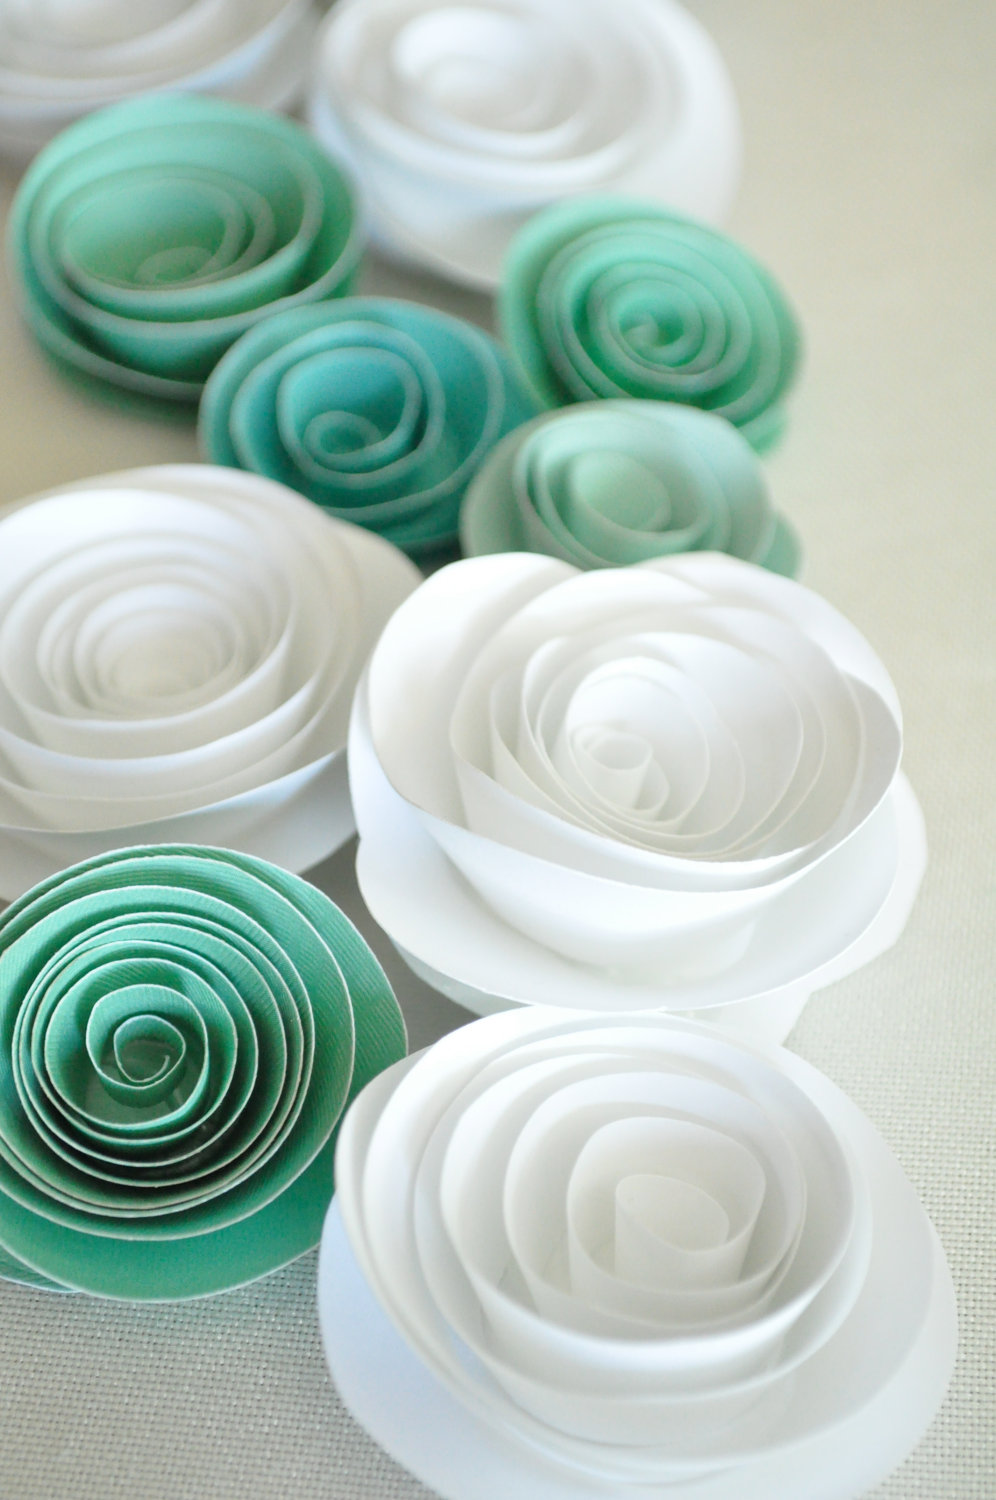 Paper flowers teal and white paper flowers wedding table paper flowers teal and white paper flowers wedding table decorations 25 flowers lille syster dhlflorist Choice Image